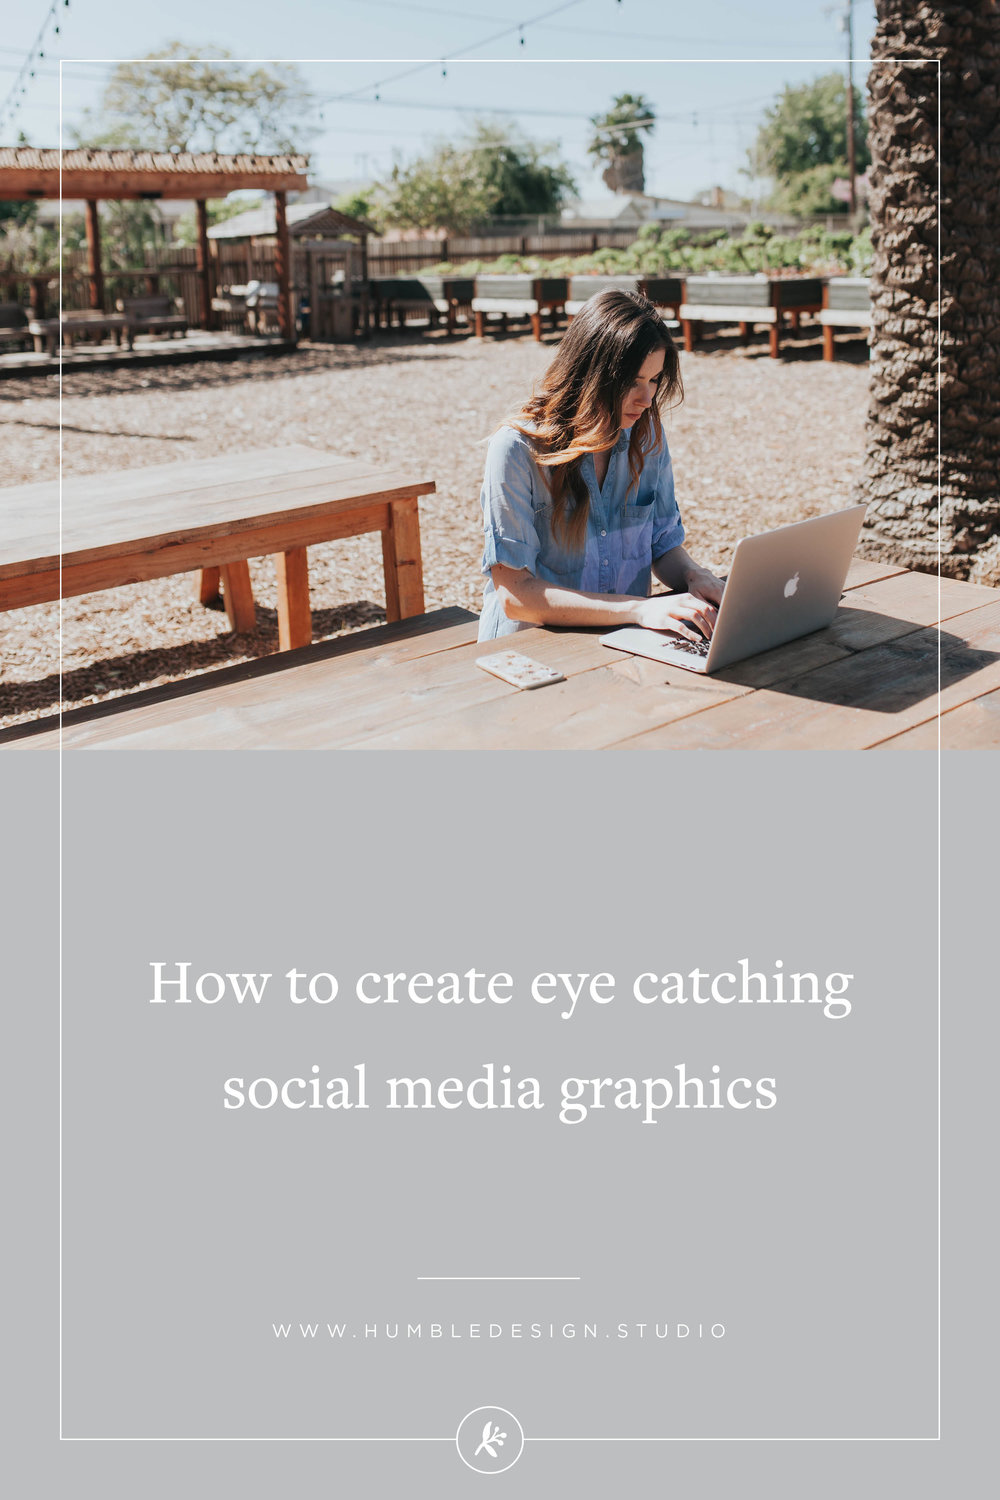 Create eye catching social media graphics